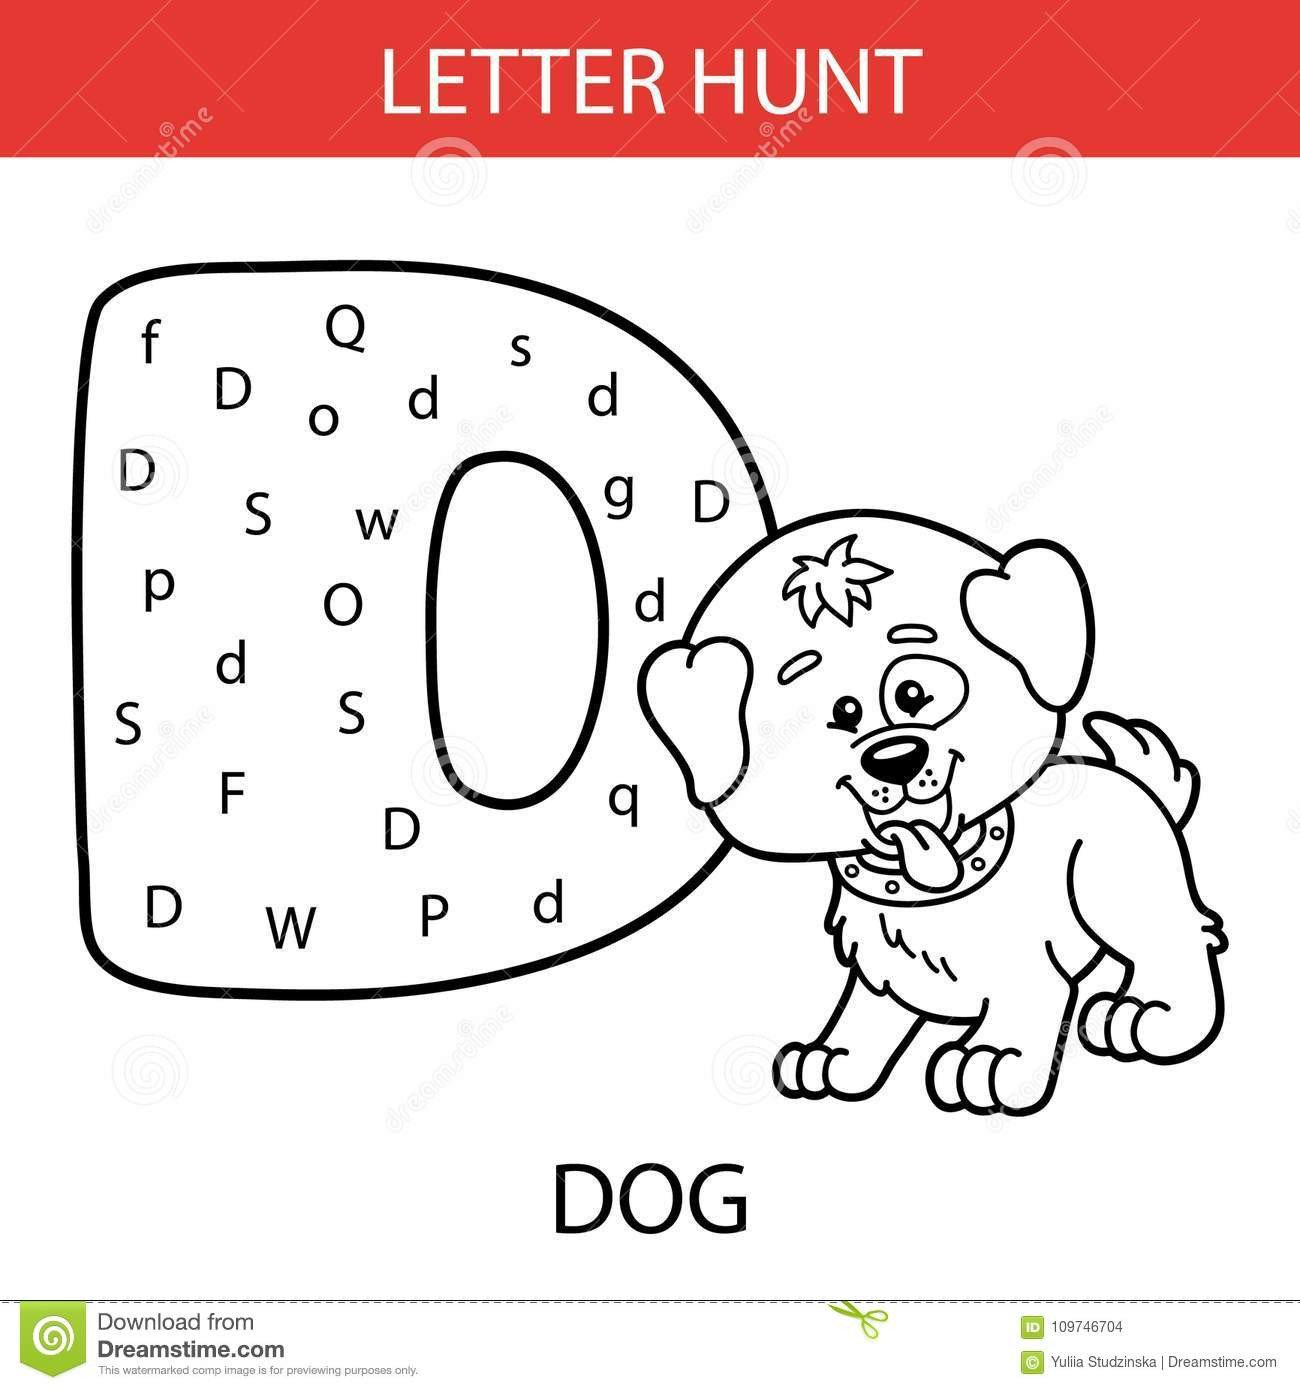 Letter Hunt Worksheet Animal Letter Hunt Dog Stock Vector Illustration Of Letter